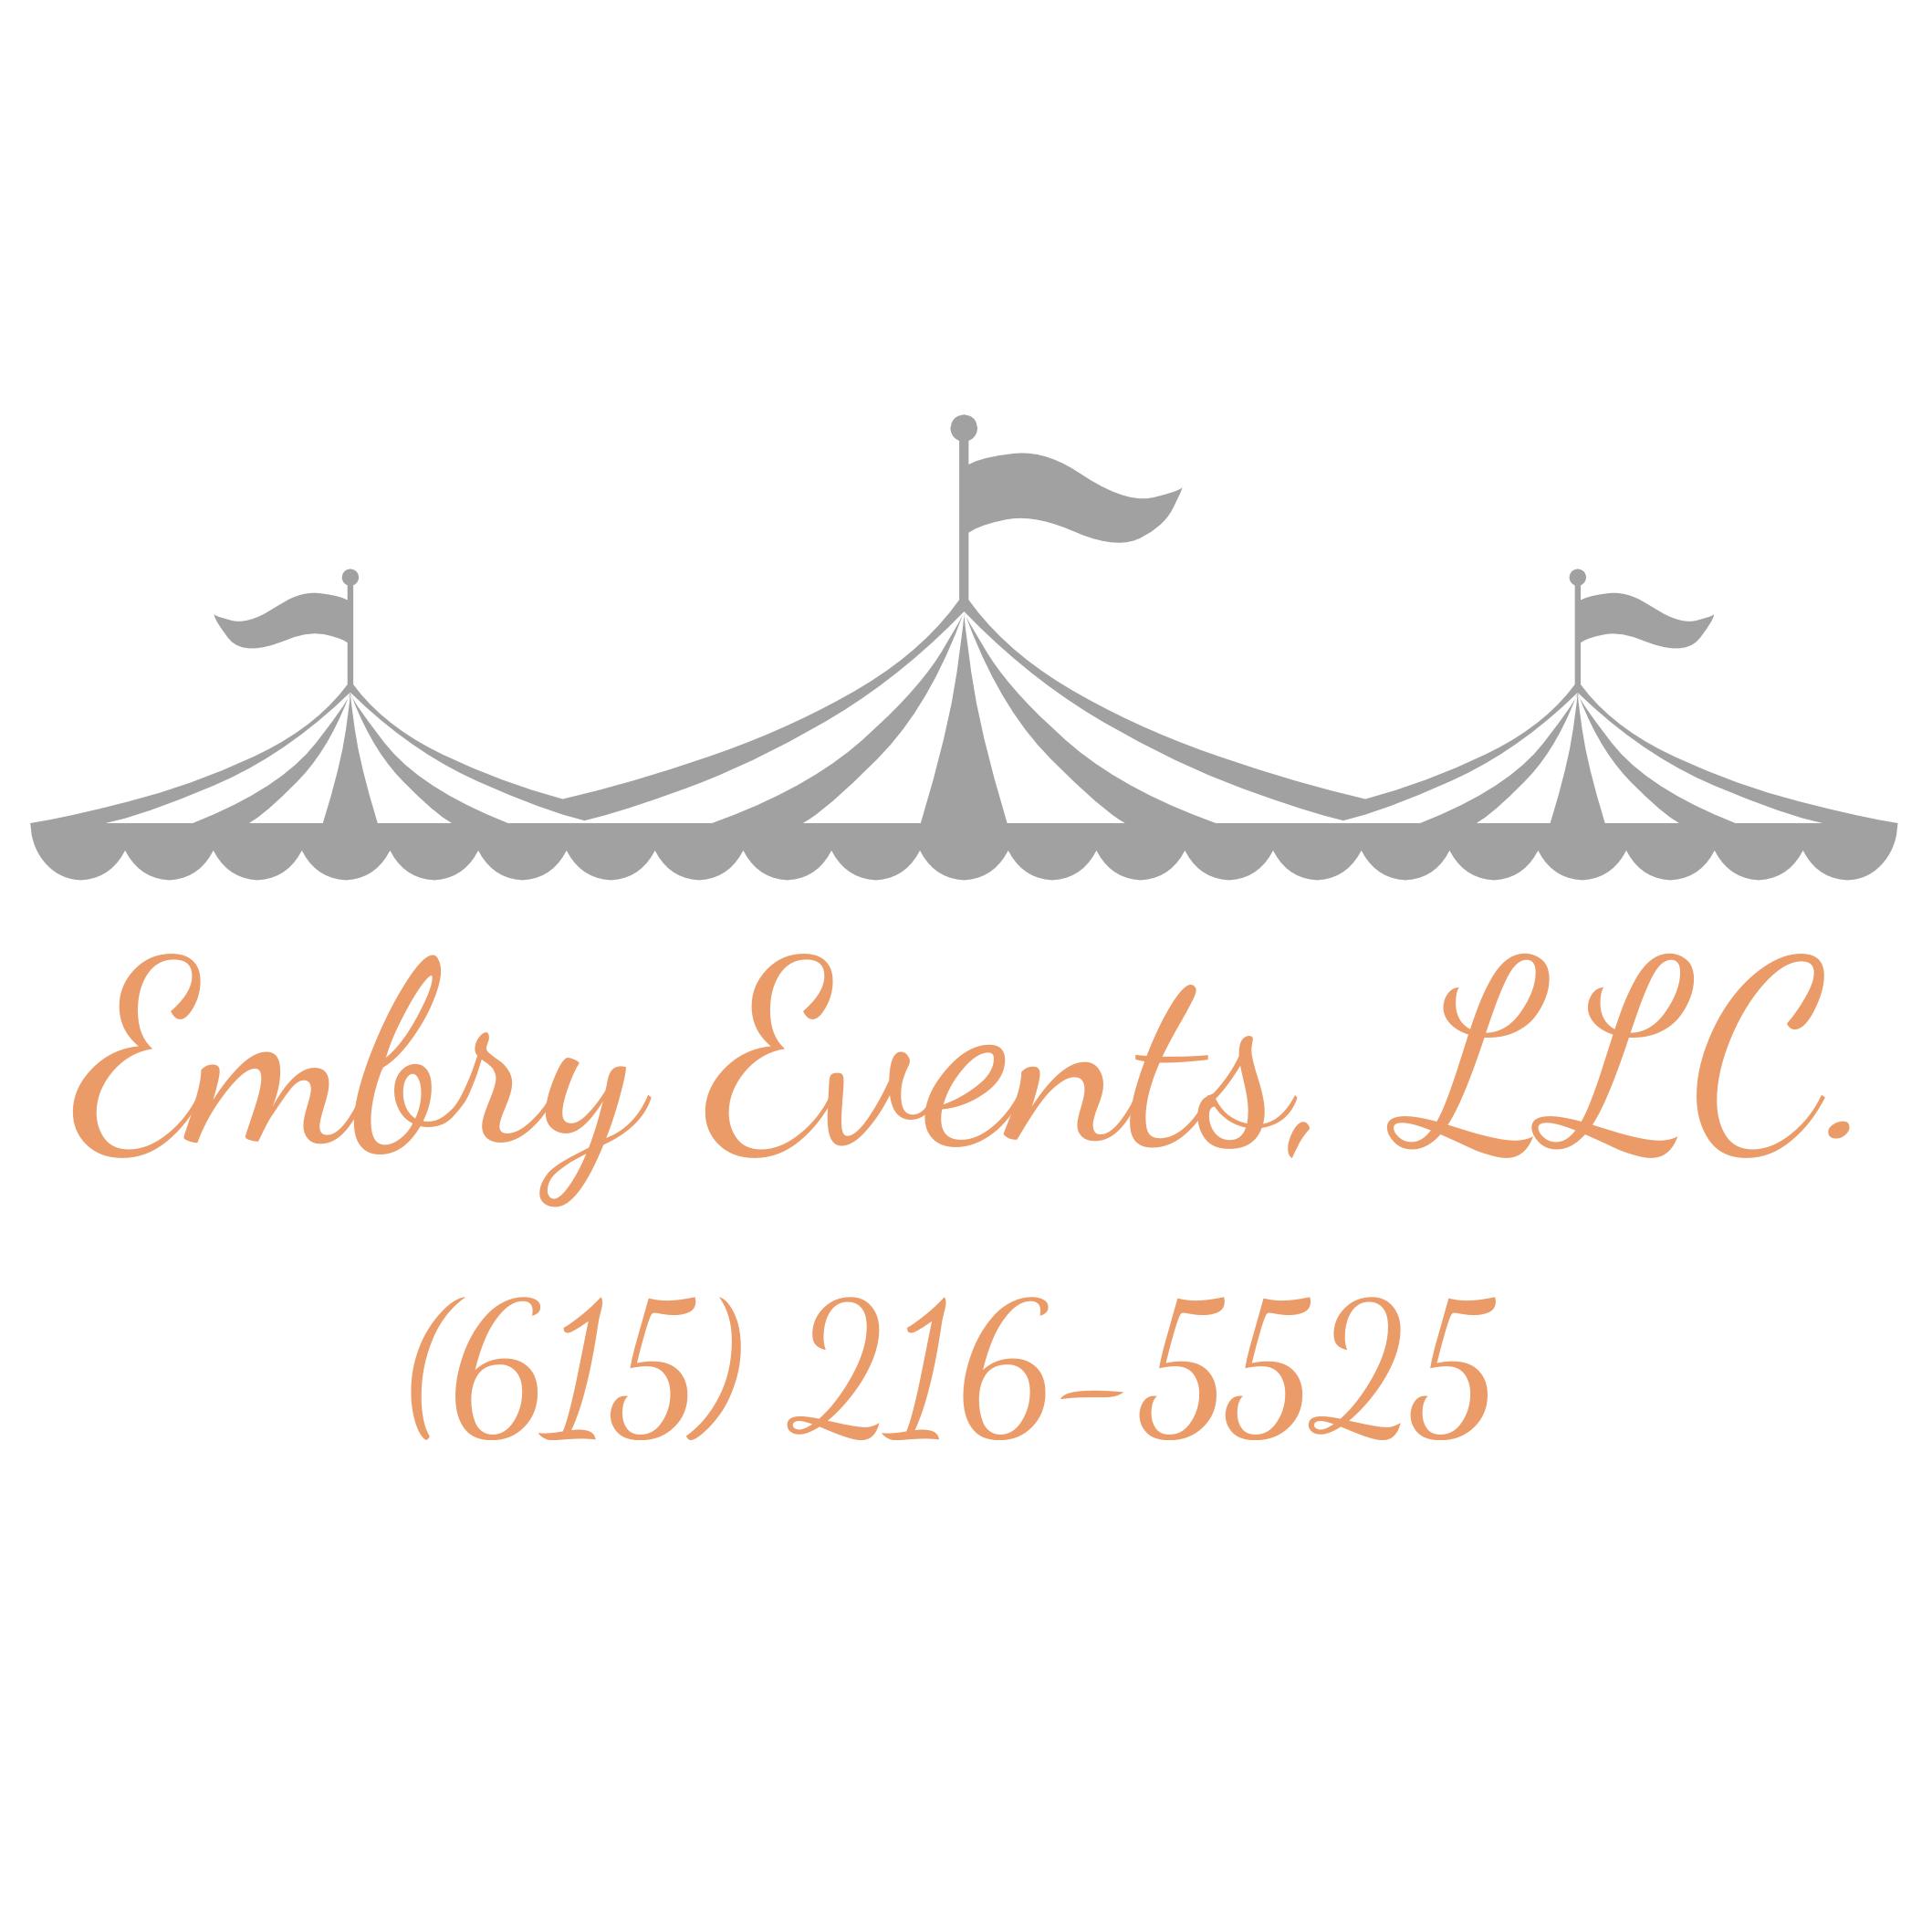 Embry Events LLC image 0